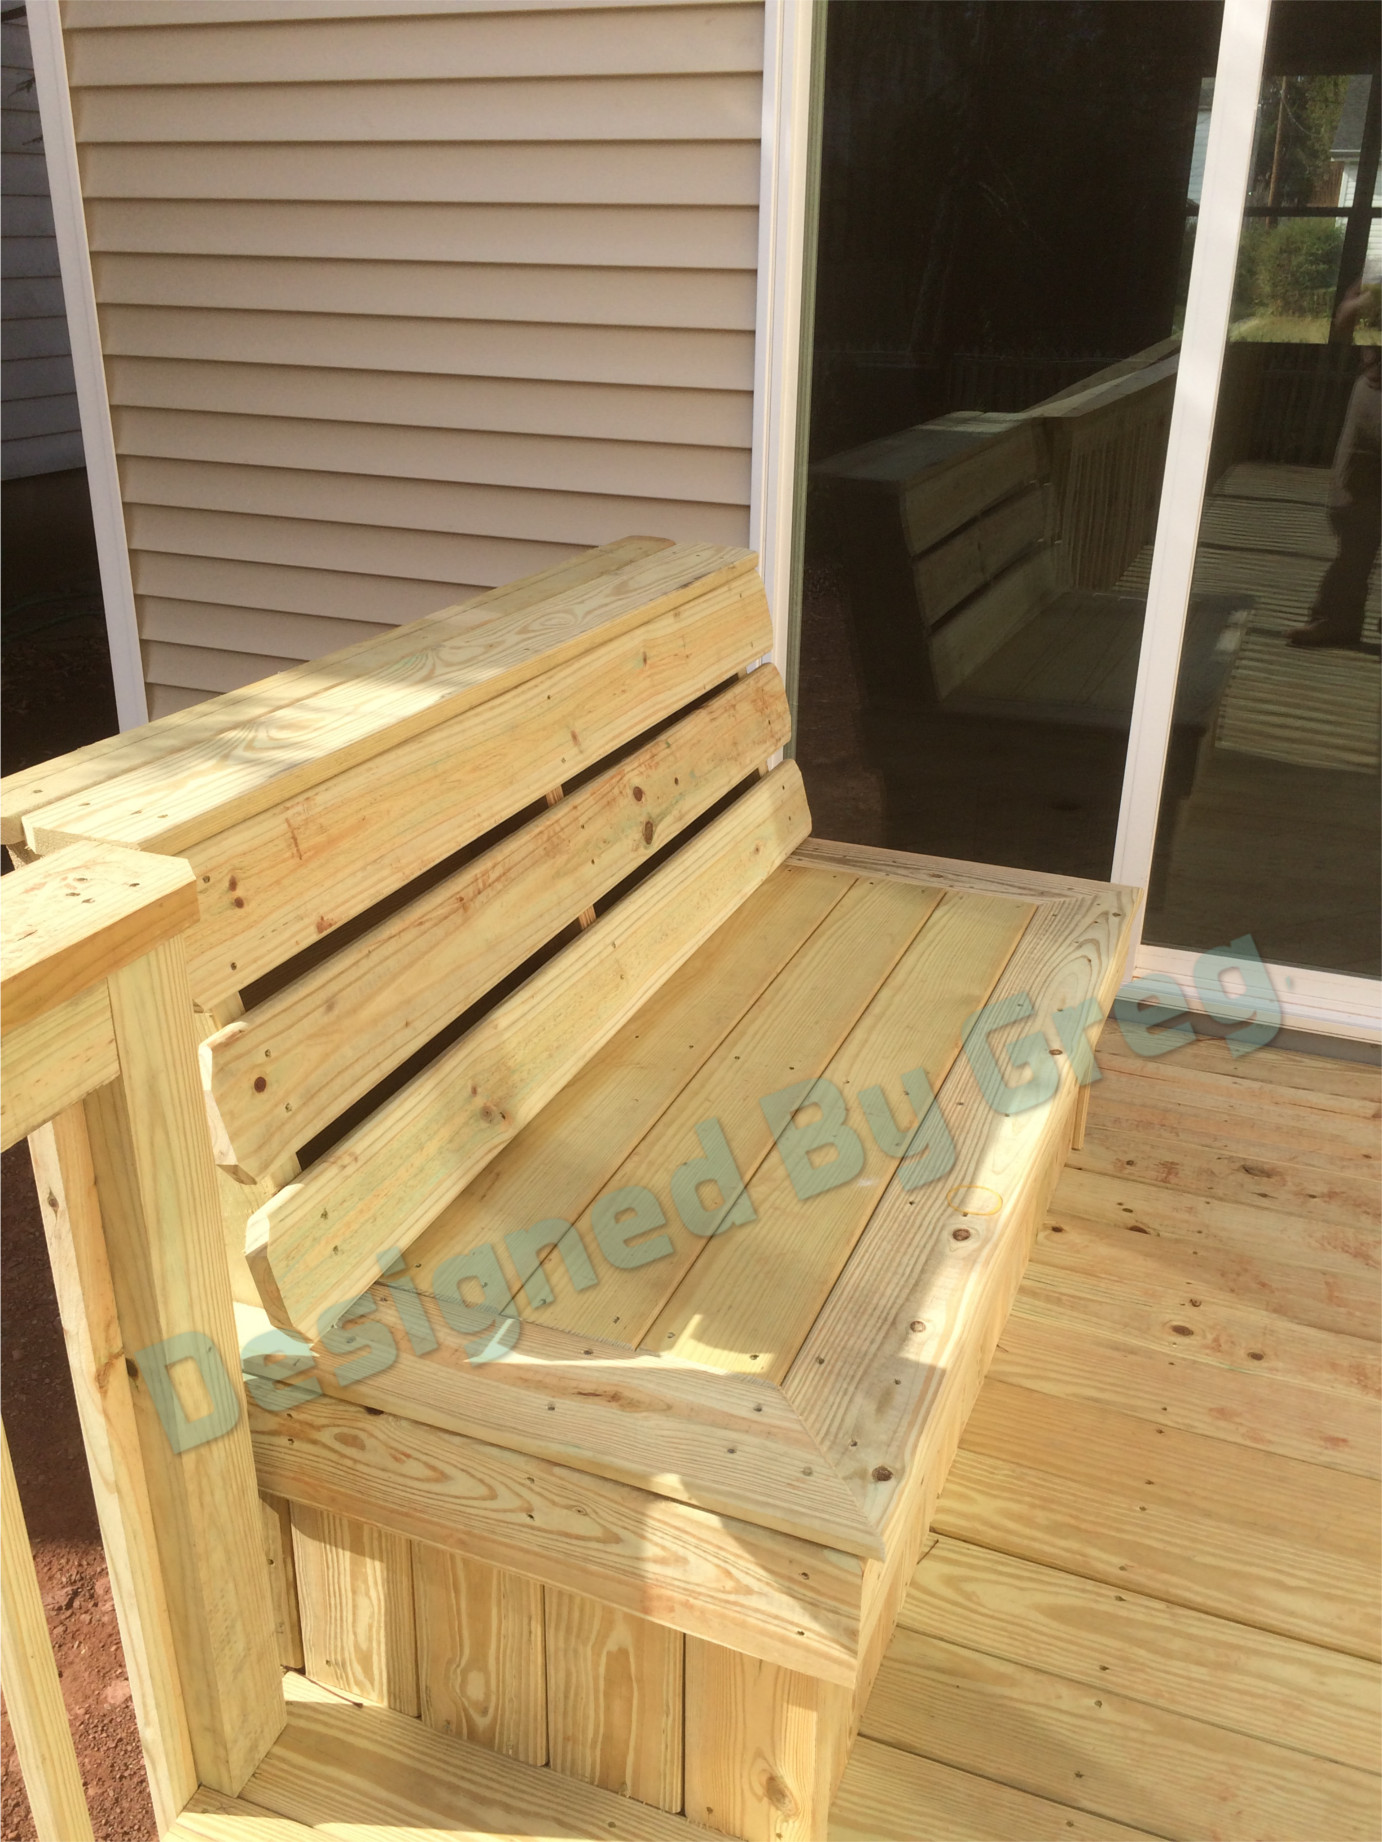 Standard height and width for bench on a deck-2014-10-21-13.45.10.jpg